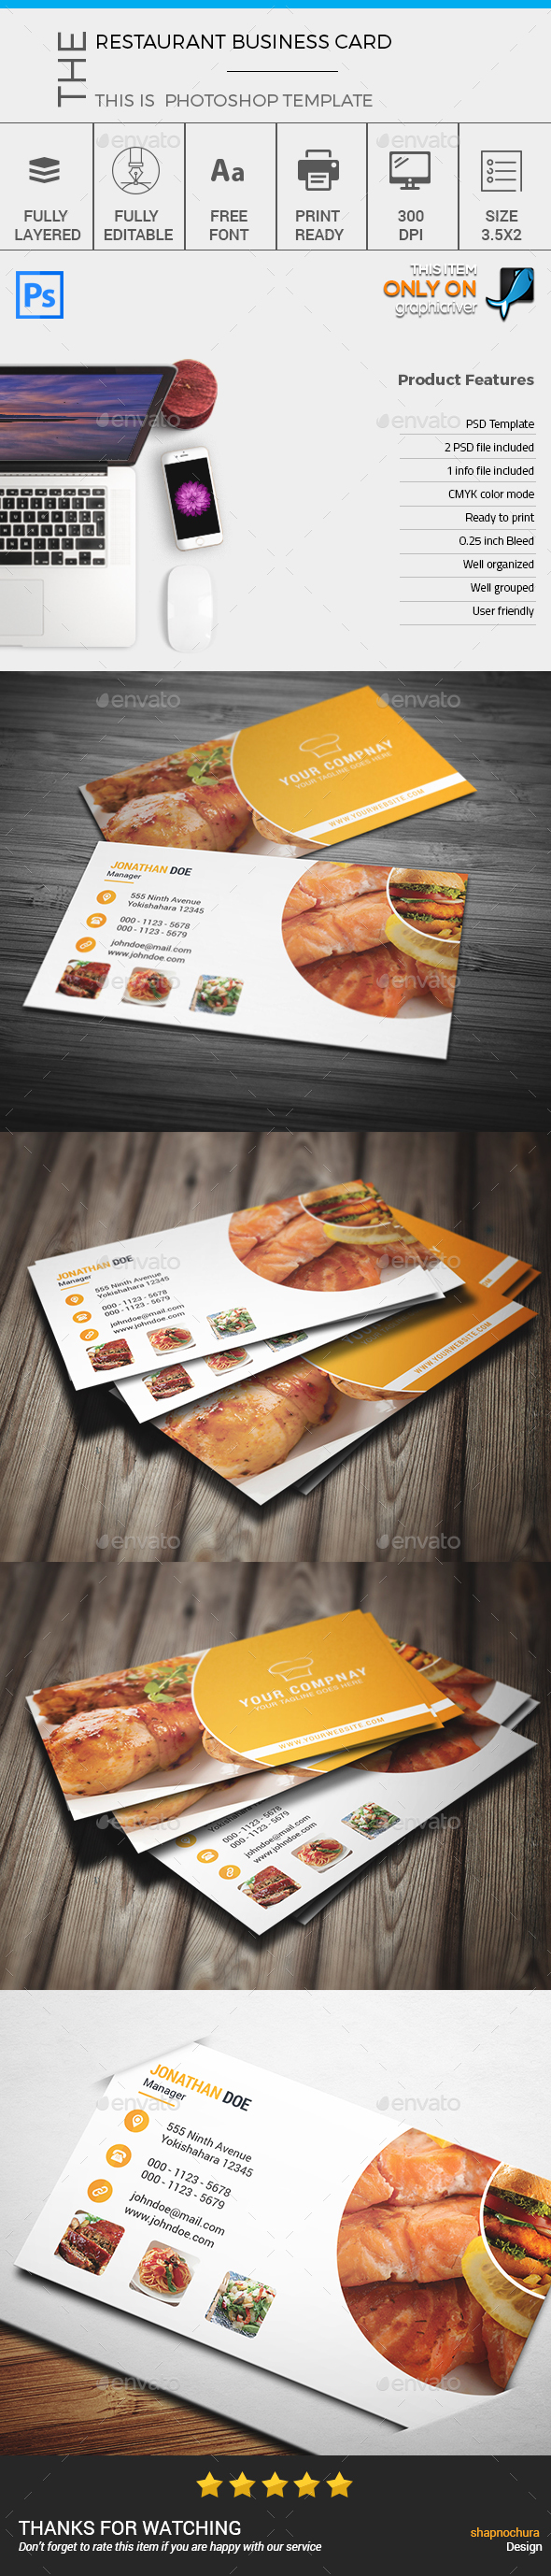 Restaurant business card template business cards print templates restaurant business card template business cards print templates download here reheart Image collections